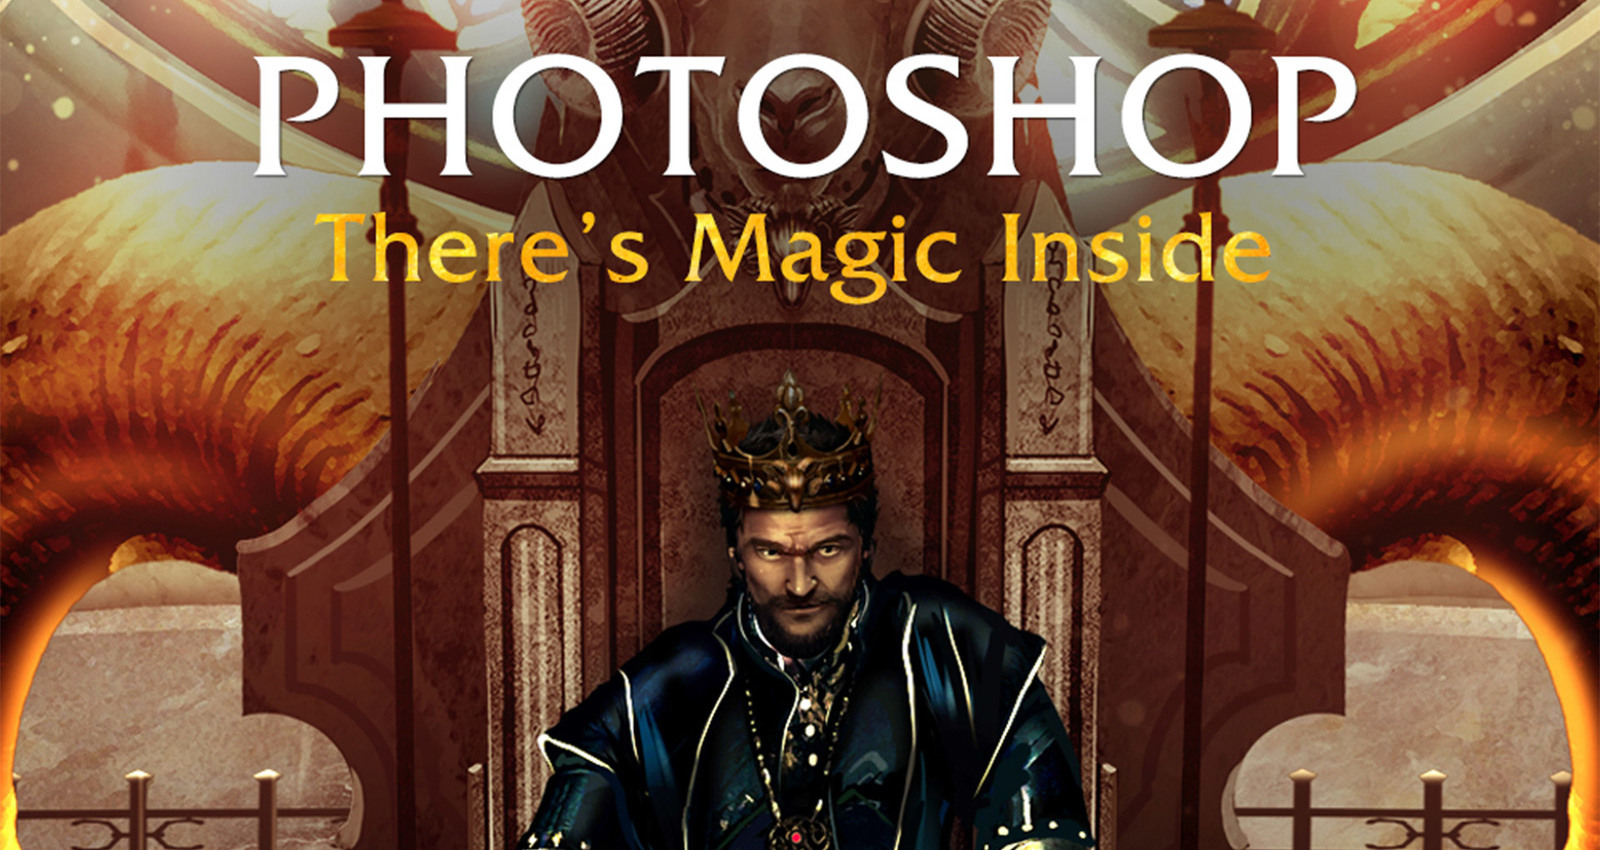 Adobe Photoshop - There's Magic Inside